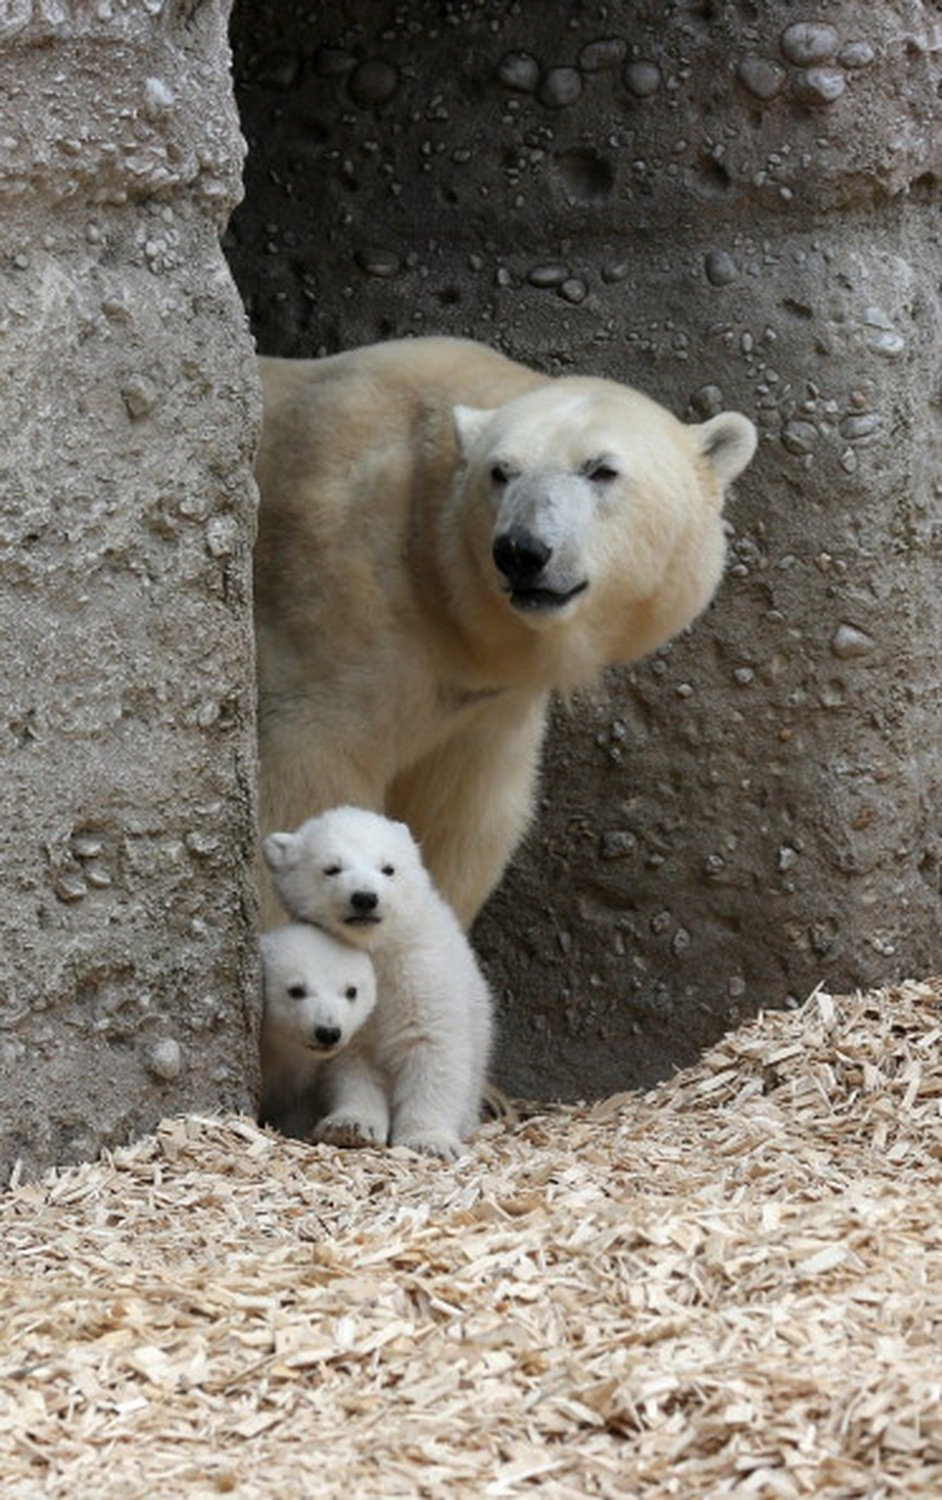 Two 14 week-old polar bear twins explore the outdoor enclosure with mother Giovanna at Tierpark Zoo in Munich.